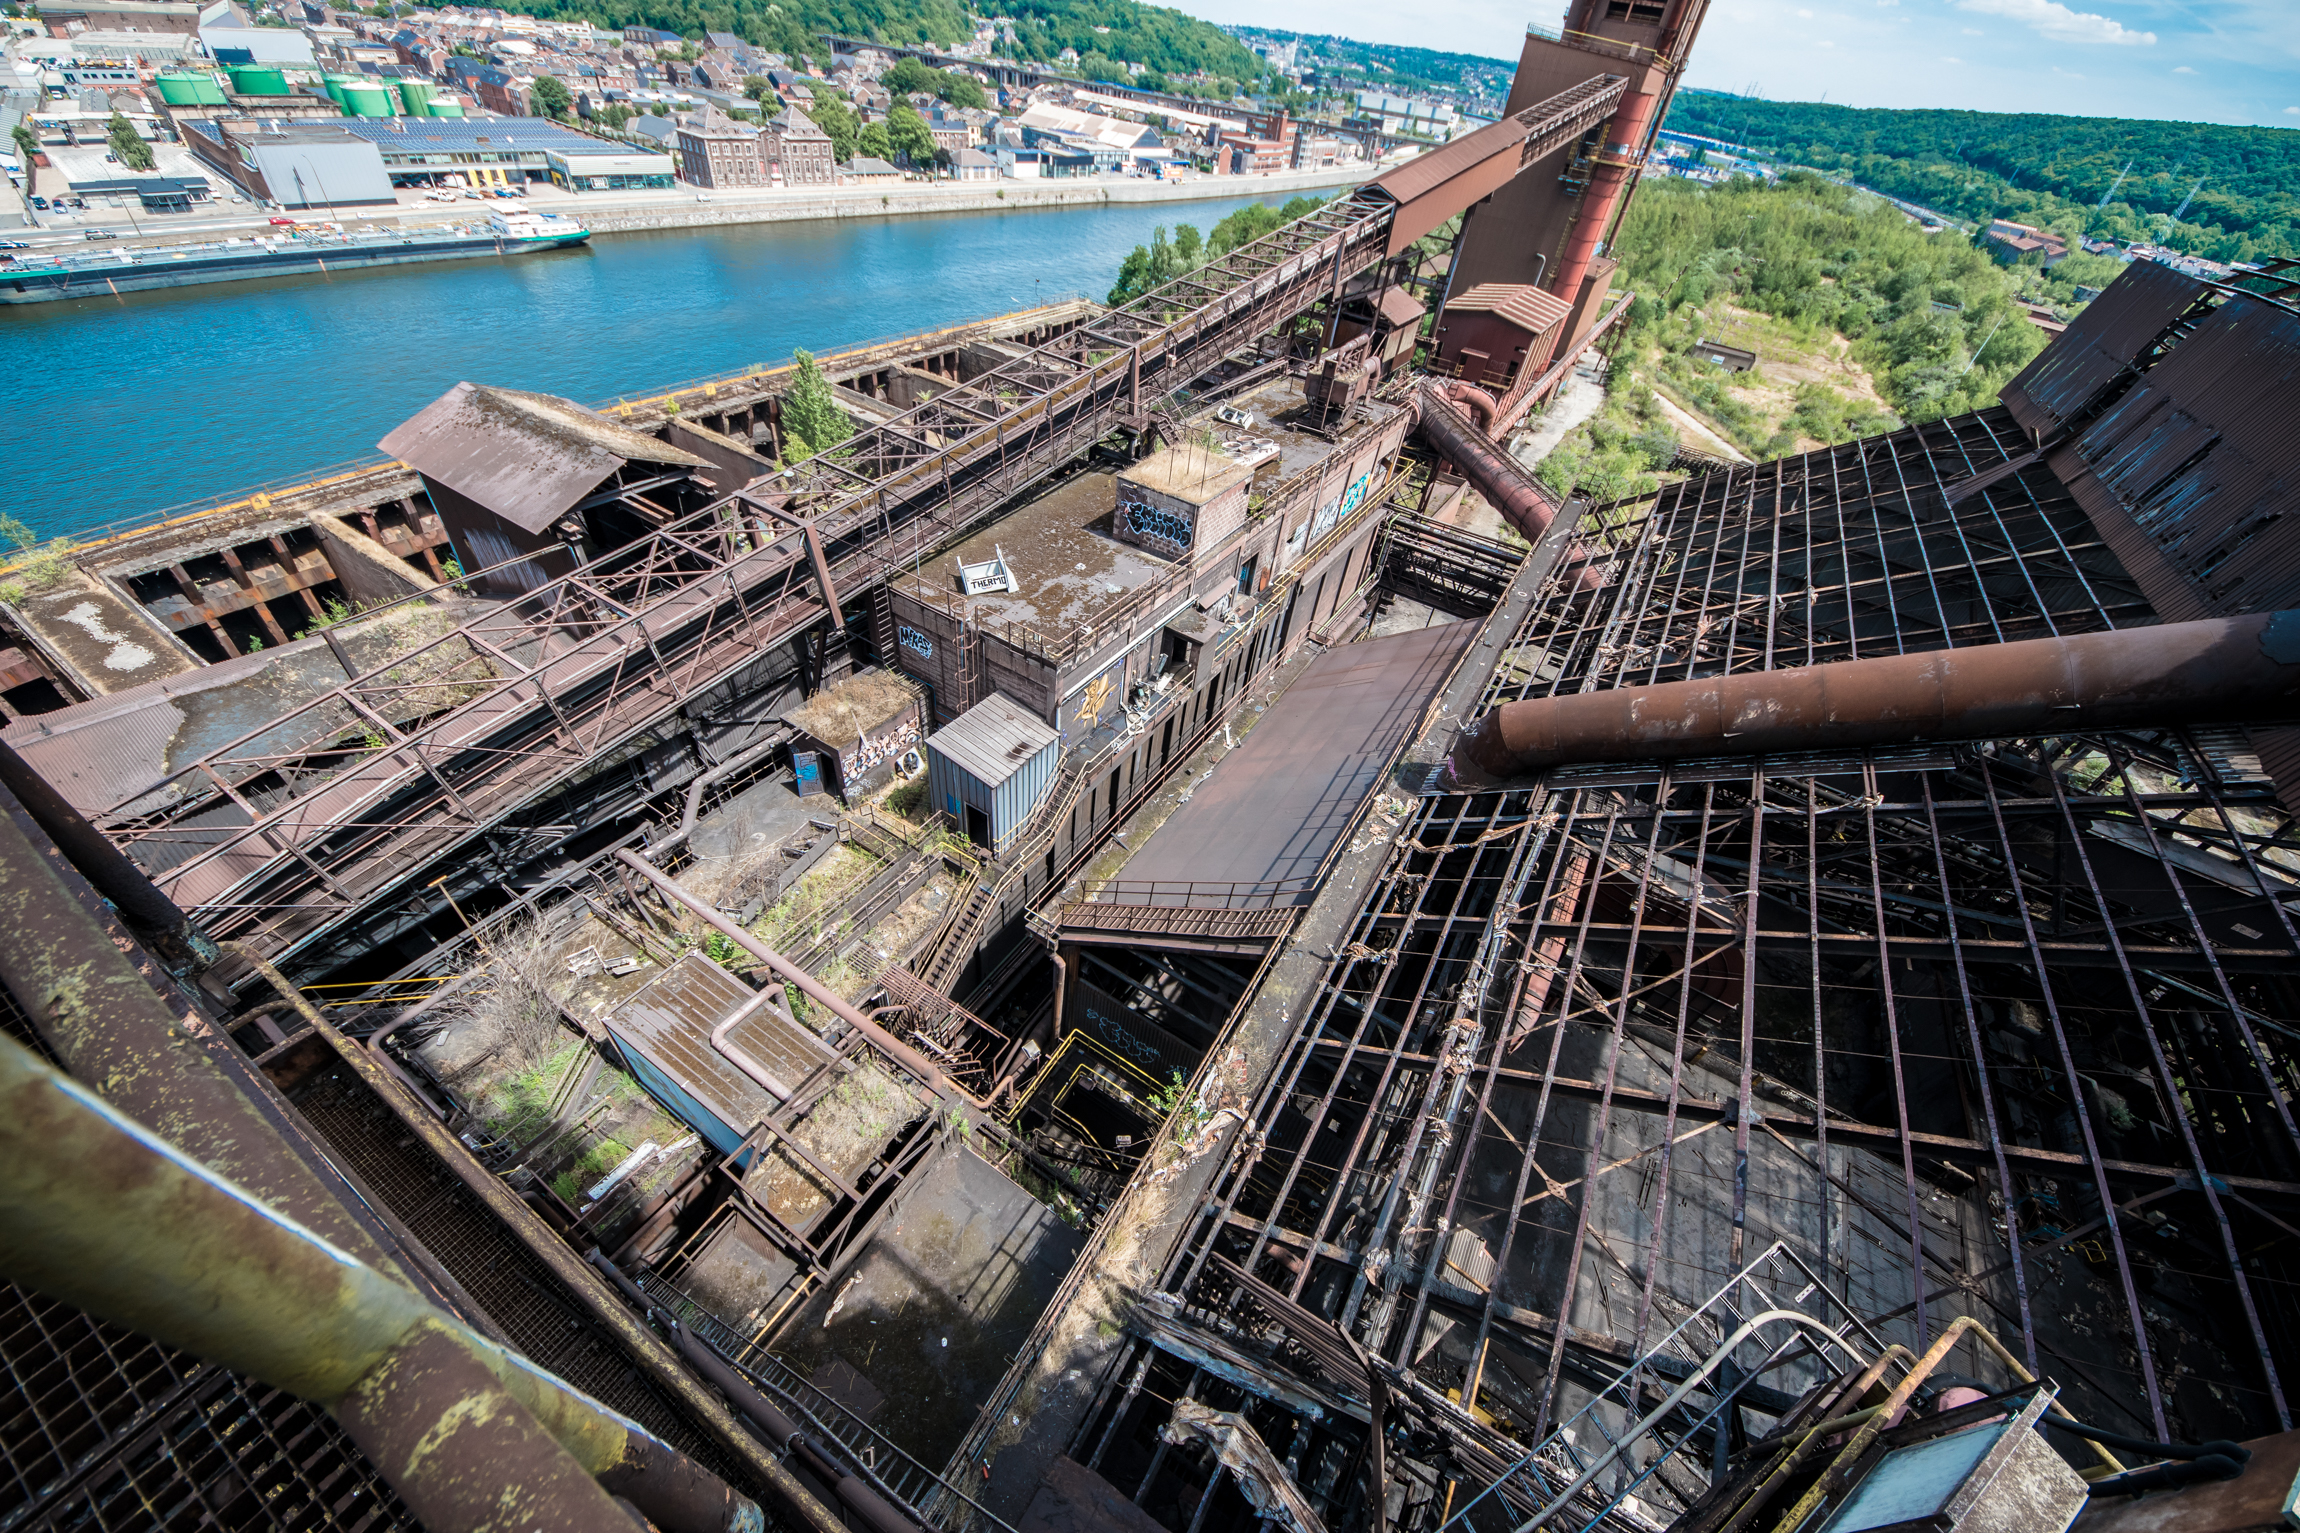 Gargantuan Blast Furnace And Steelworks - The last item on a heavy weekend itinery. Was meant to be the grand highlight, but legs were weak and tiredness setting in. The climb up the huge furnace offered fantastic views over this, the biggest site, I have been in.